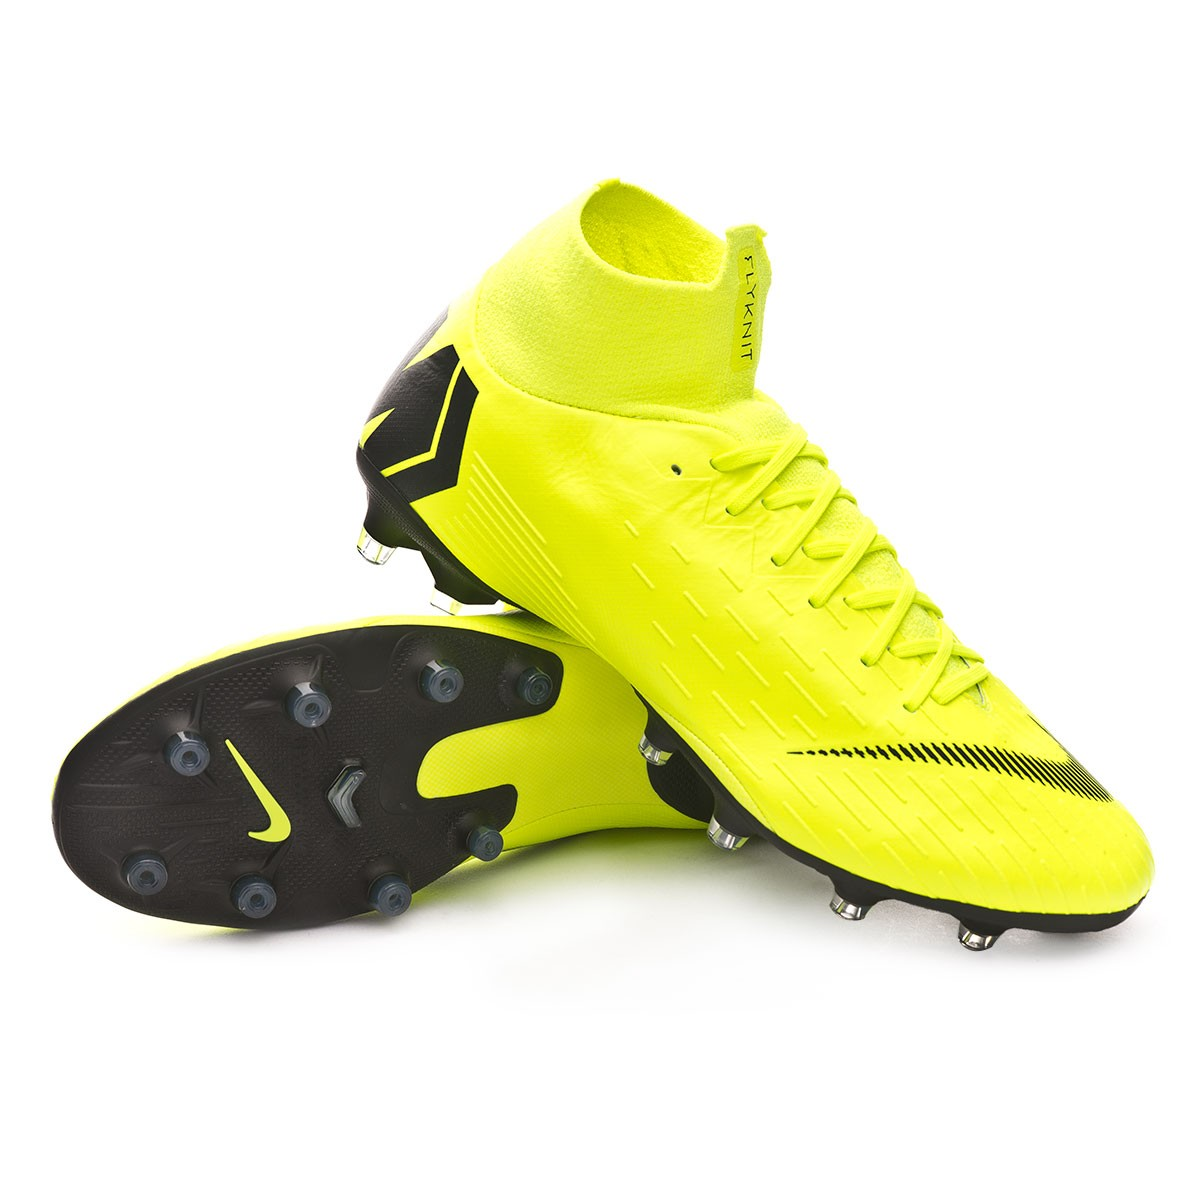 ca738a39611 Football Boots Nike Mercurial Superfly VI Pro AG-Pro Volt-Black - Football  store Fútbol Emotion